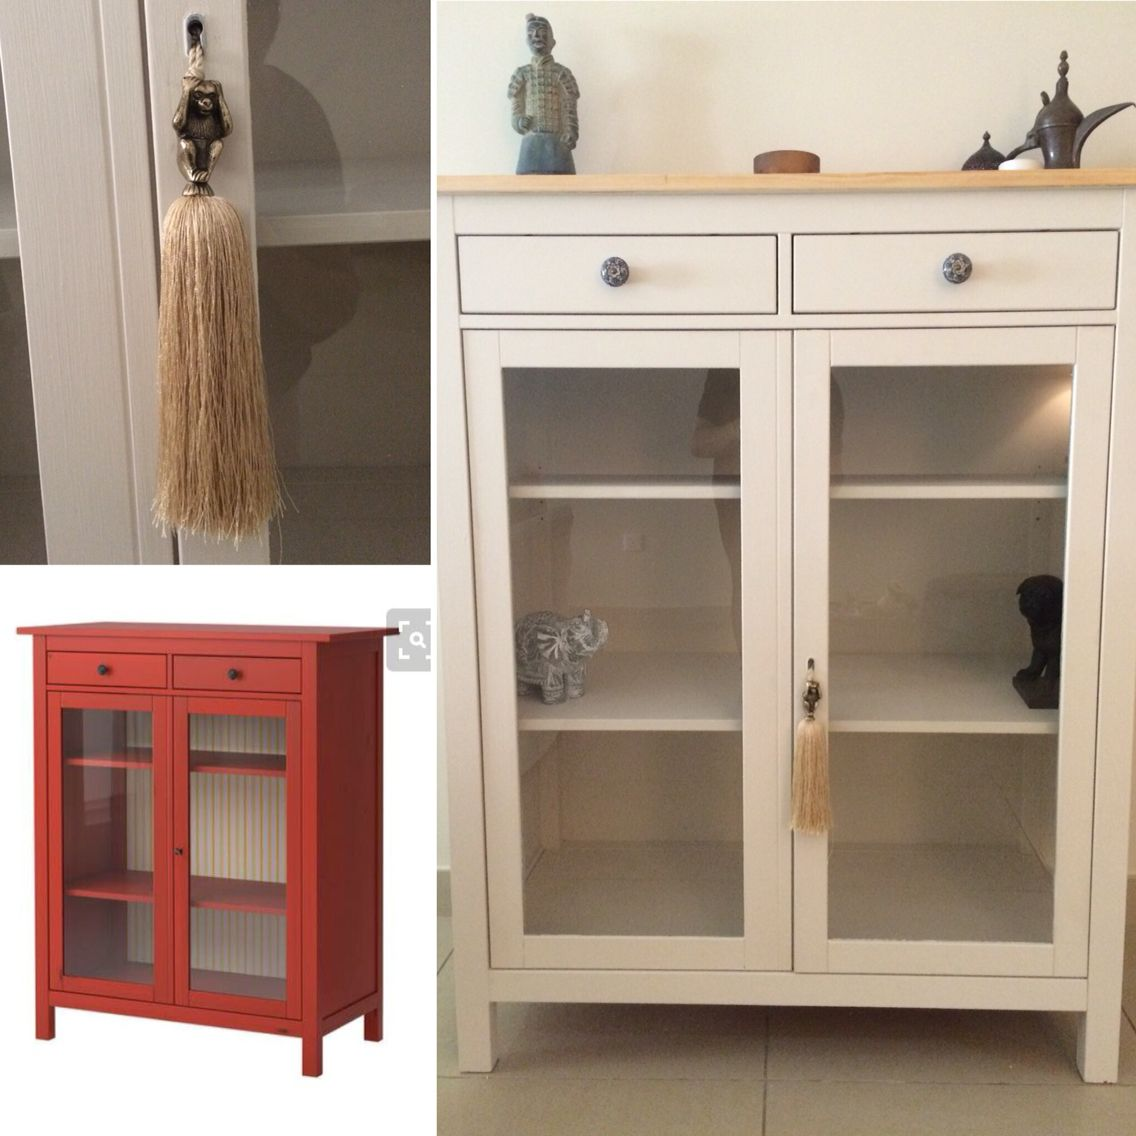 Merveilleux IKEA Hemnes Linen Cabinet Upcycle. So Glad I Did This... Diy Furniture